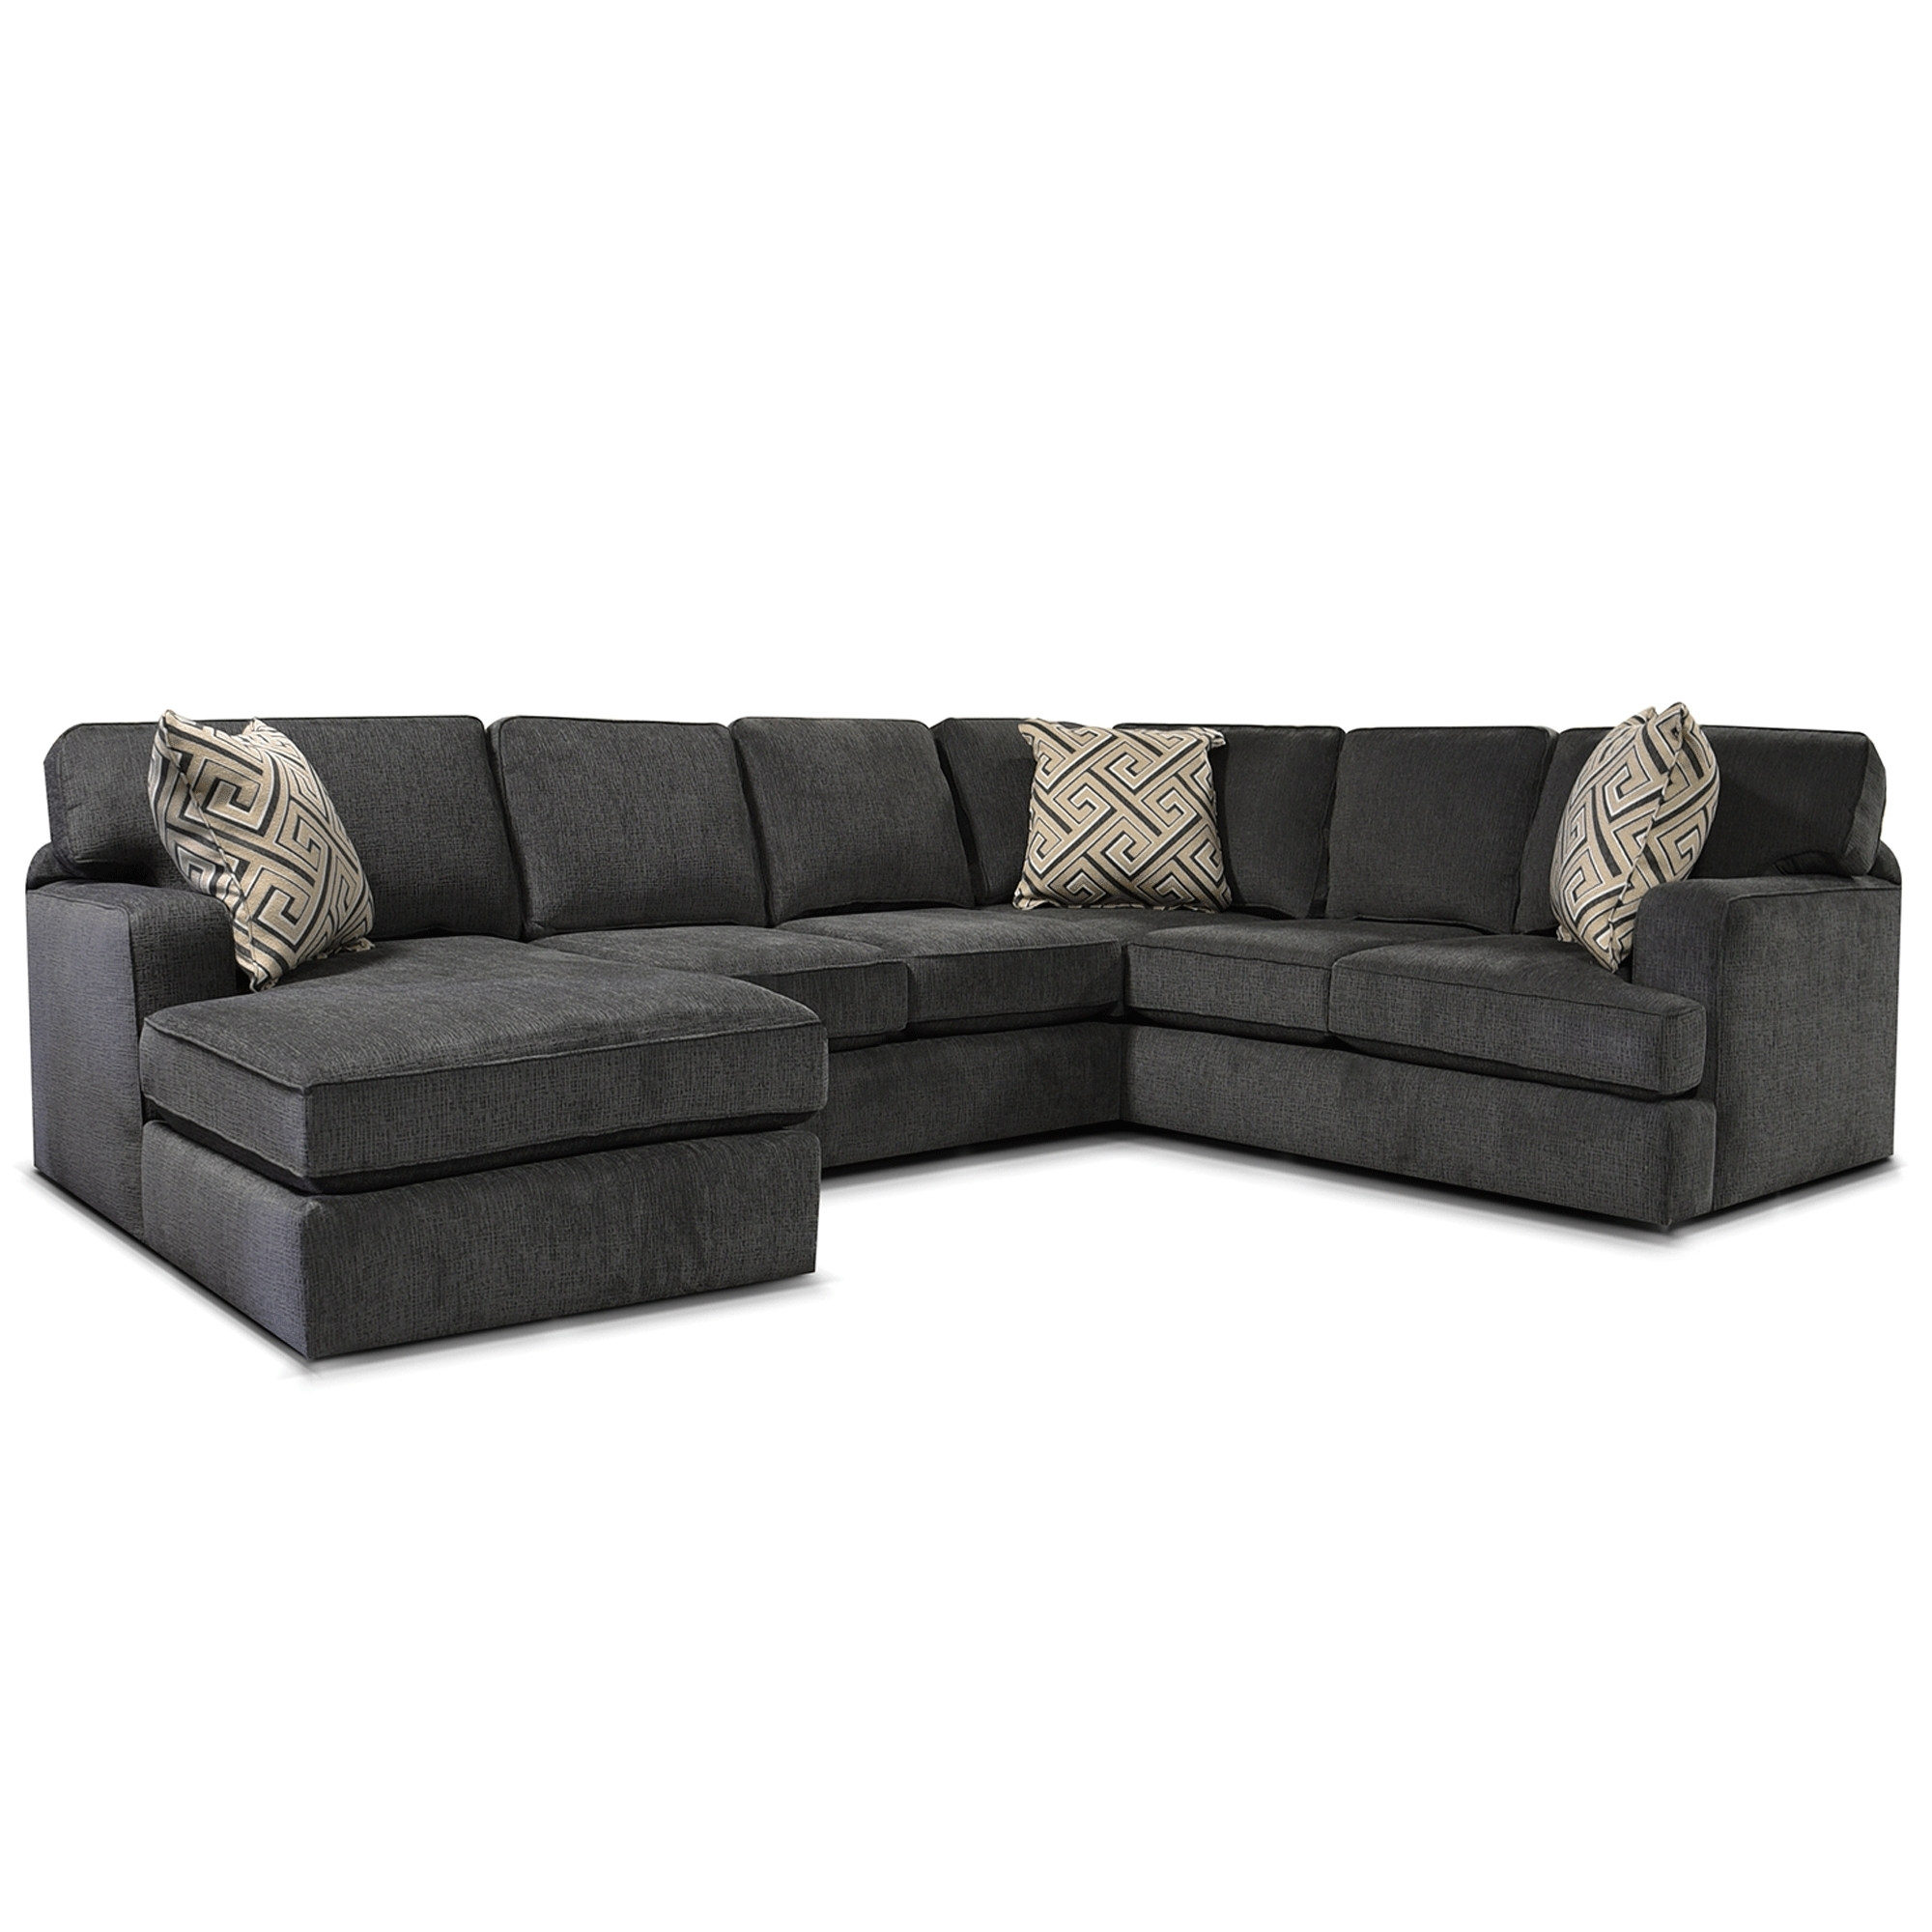 Rouse 3 Piece Sectional – Bernie & Phyl's Furniture  England Regarding Widely Used England Sectional Sofas (View 15 of 20)